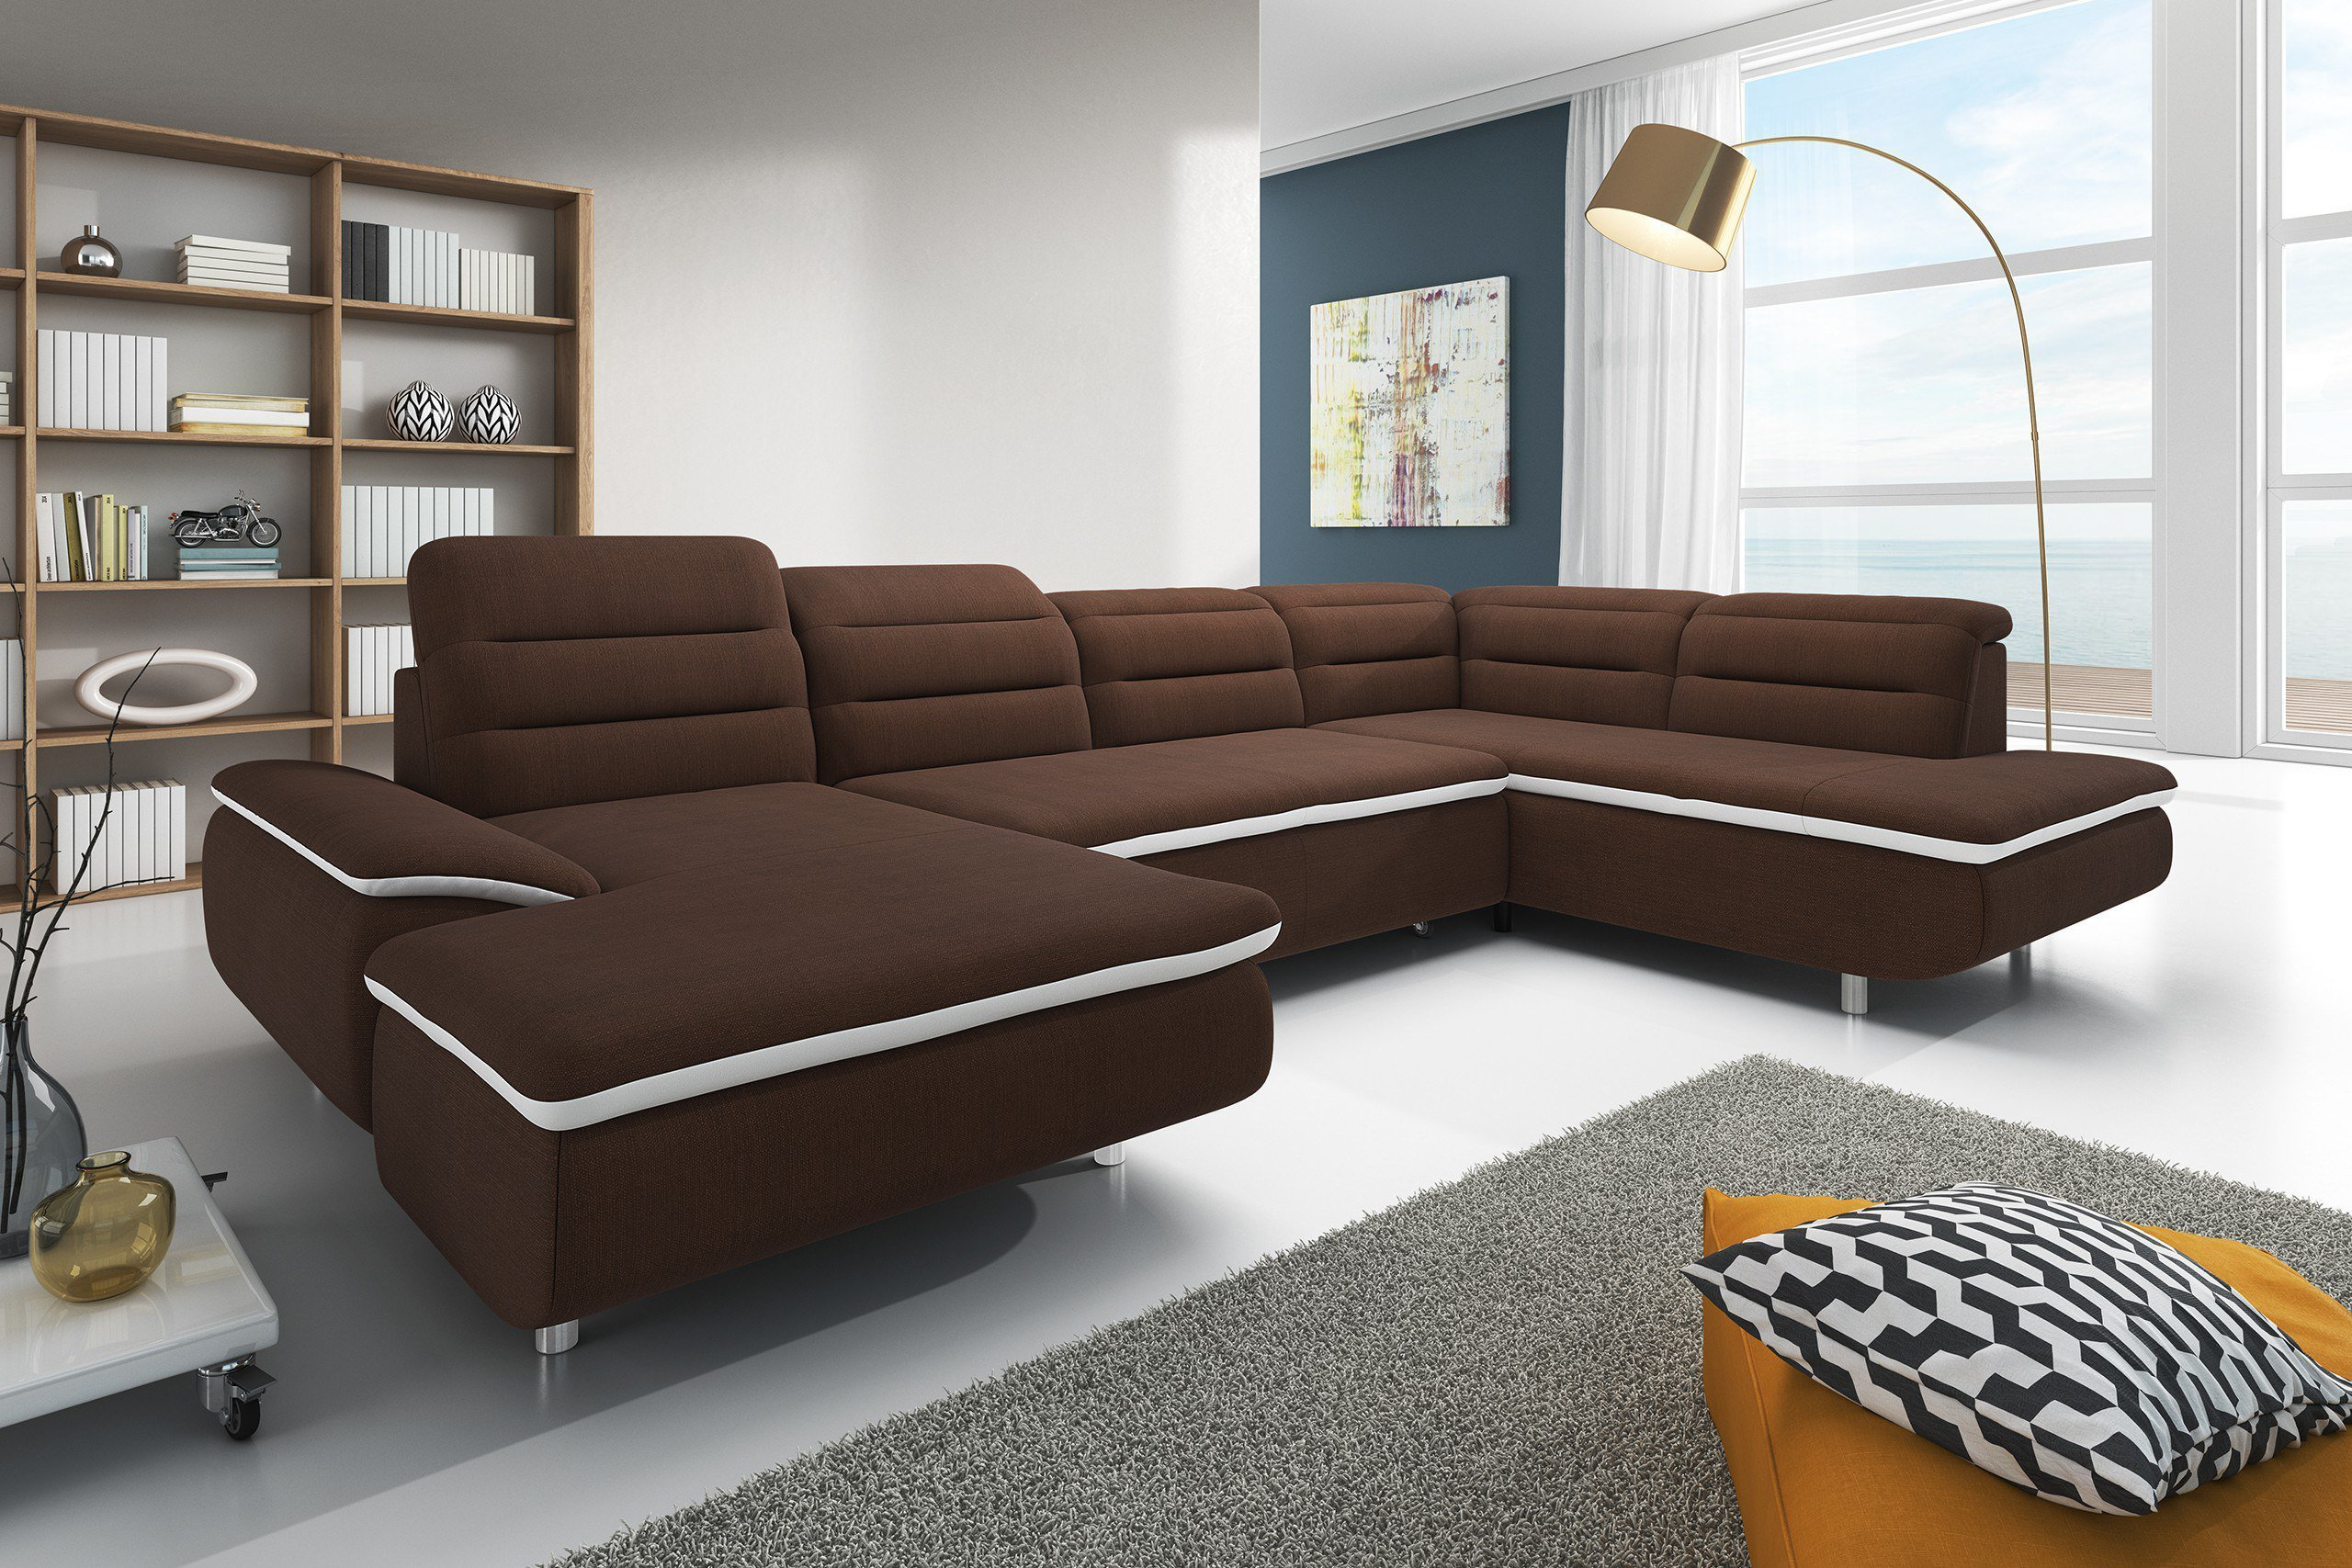 new look m bel slize u sofa in braun m bel letz ihr online shop. Black Bedroom Furniture Sets. Home Design Ideas